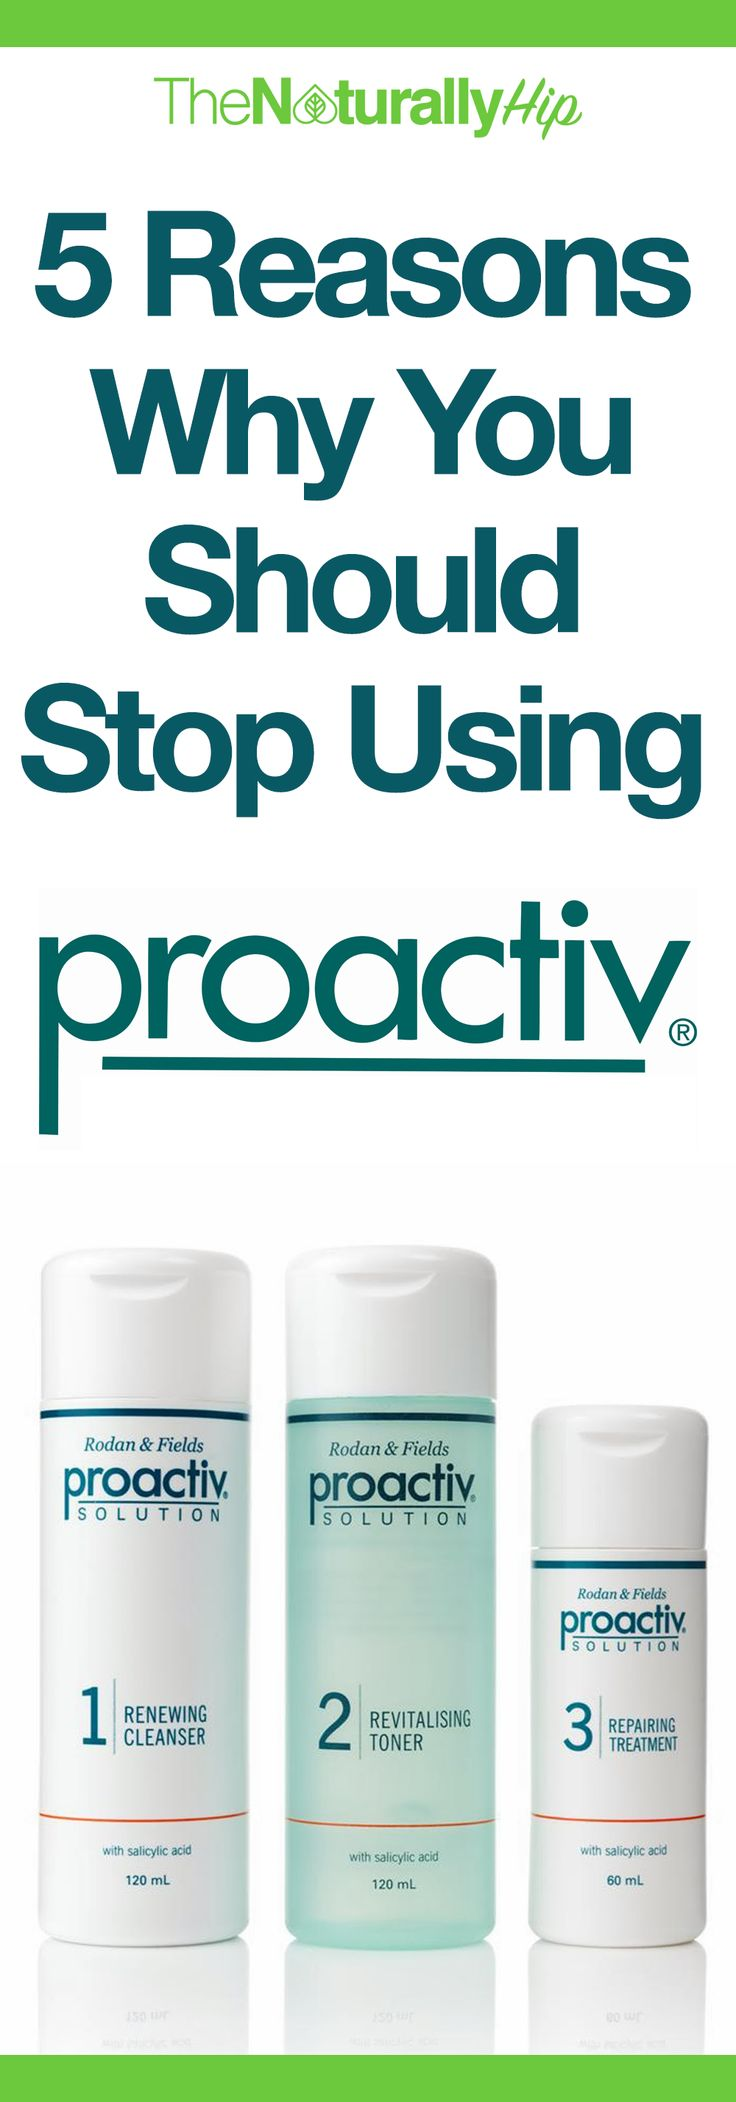 5 Reasons Why You Should Stop Using Proactiv | Hint: It's full of chemicals...